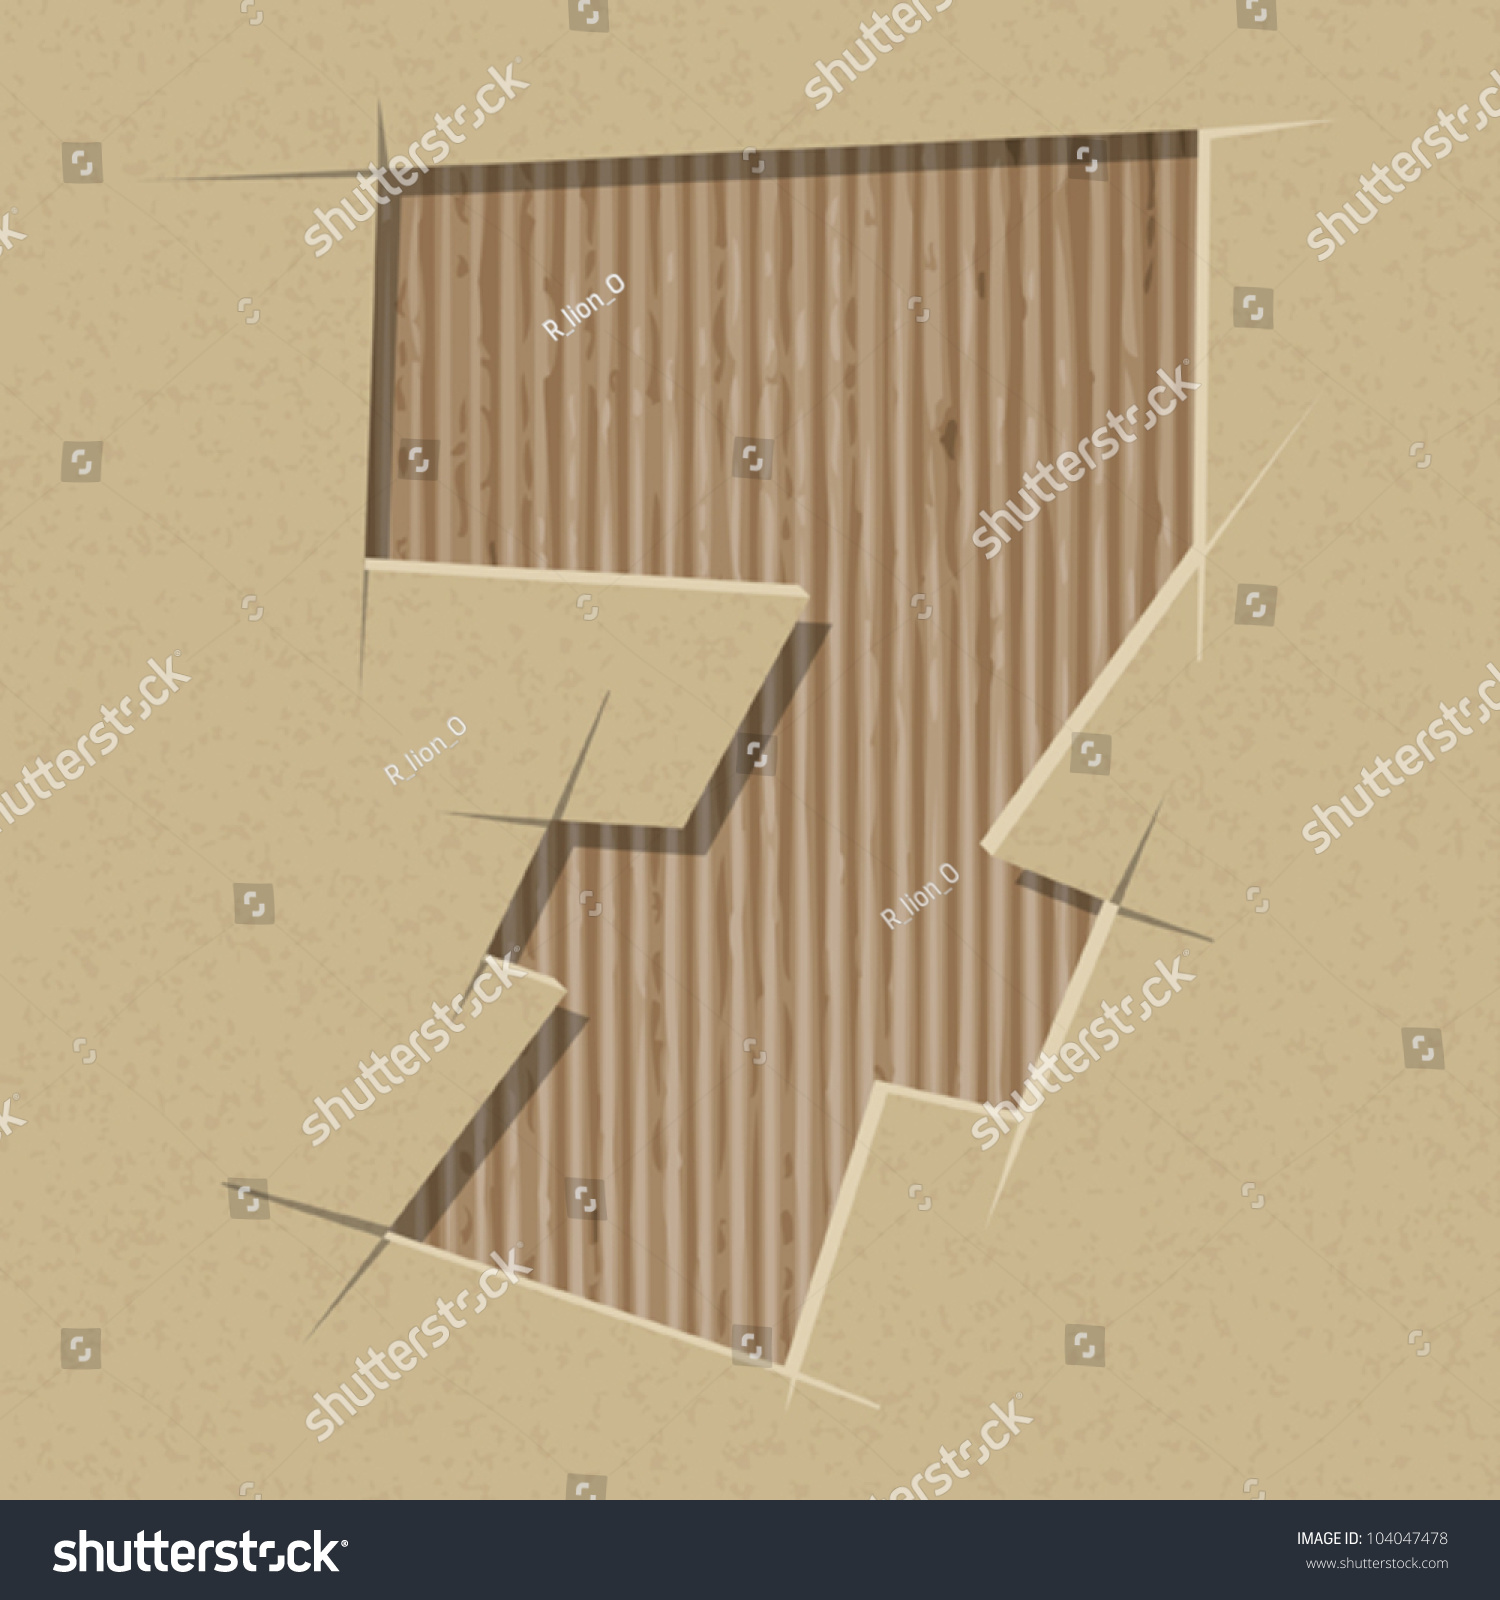 Number 7 Cut Out On Cardboard Stock Vector